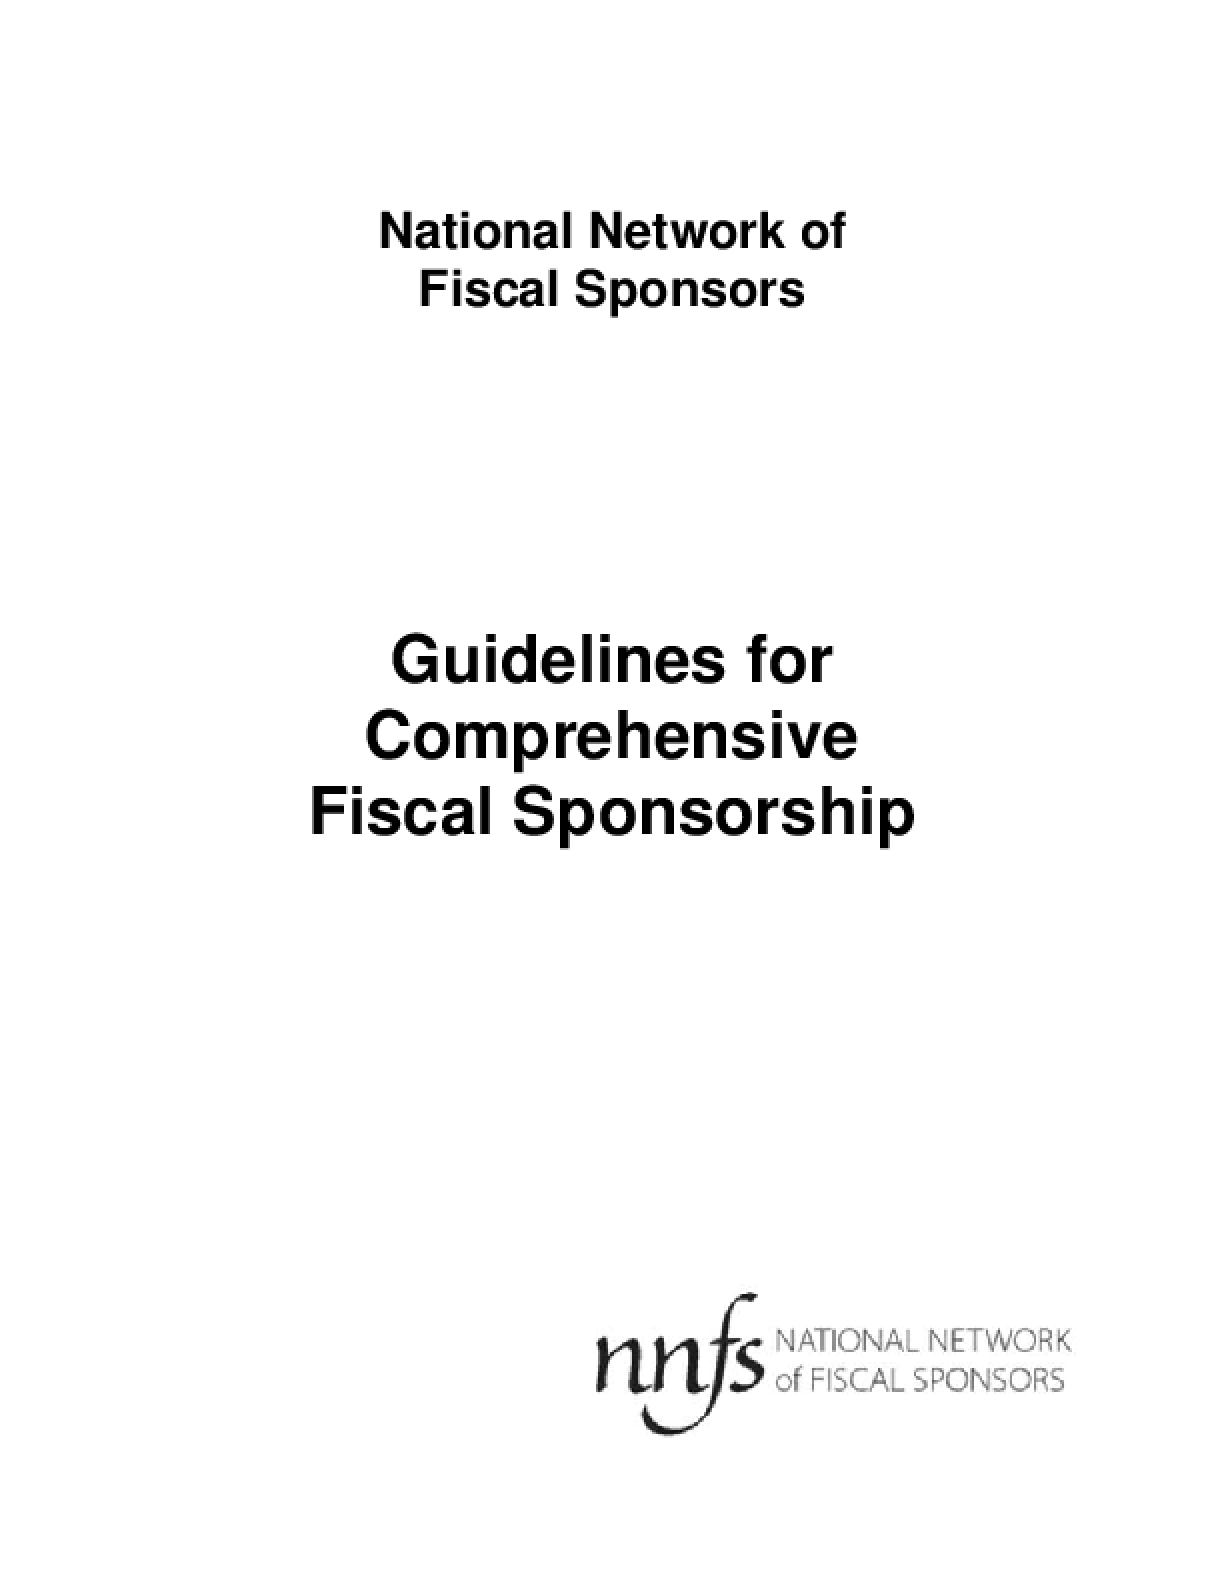 Guidelines for Comprehensive Fiscal Sponsorship